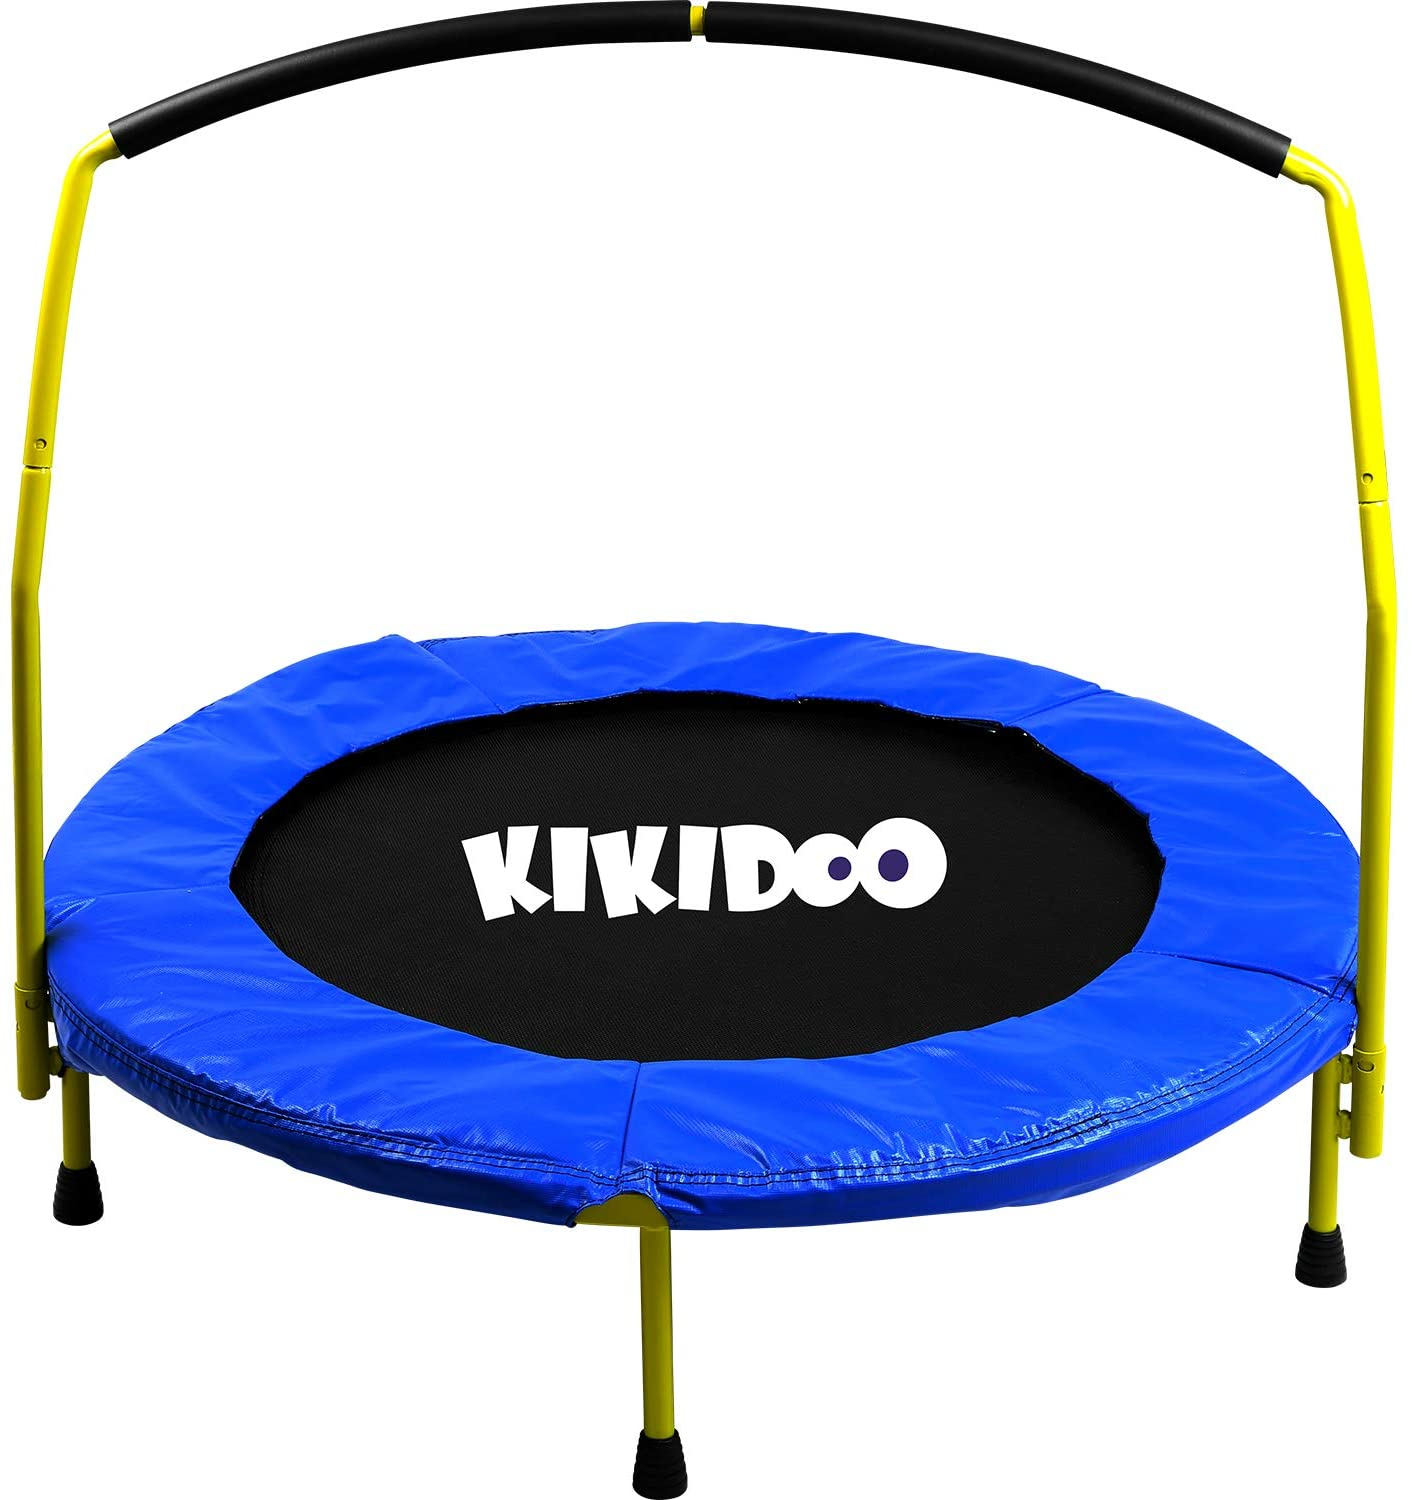 Toddler 3' Trampoline With Handlebar- - KIKIDOO